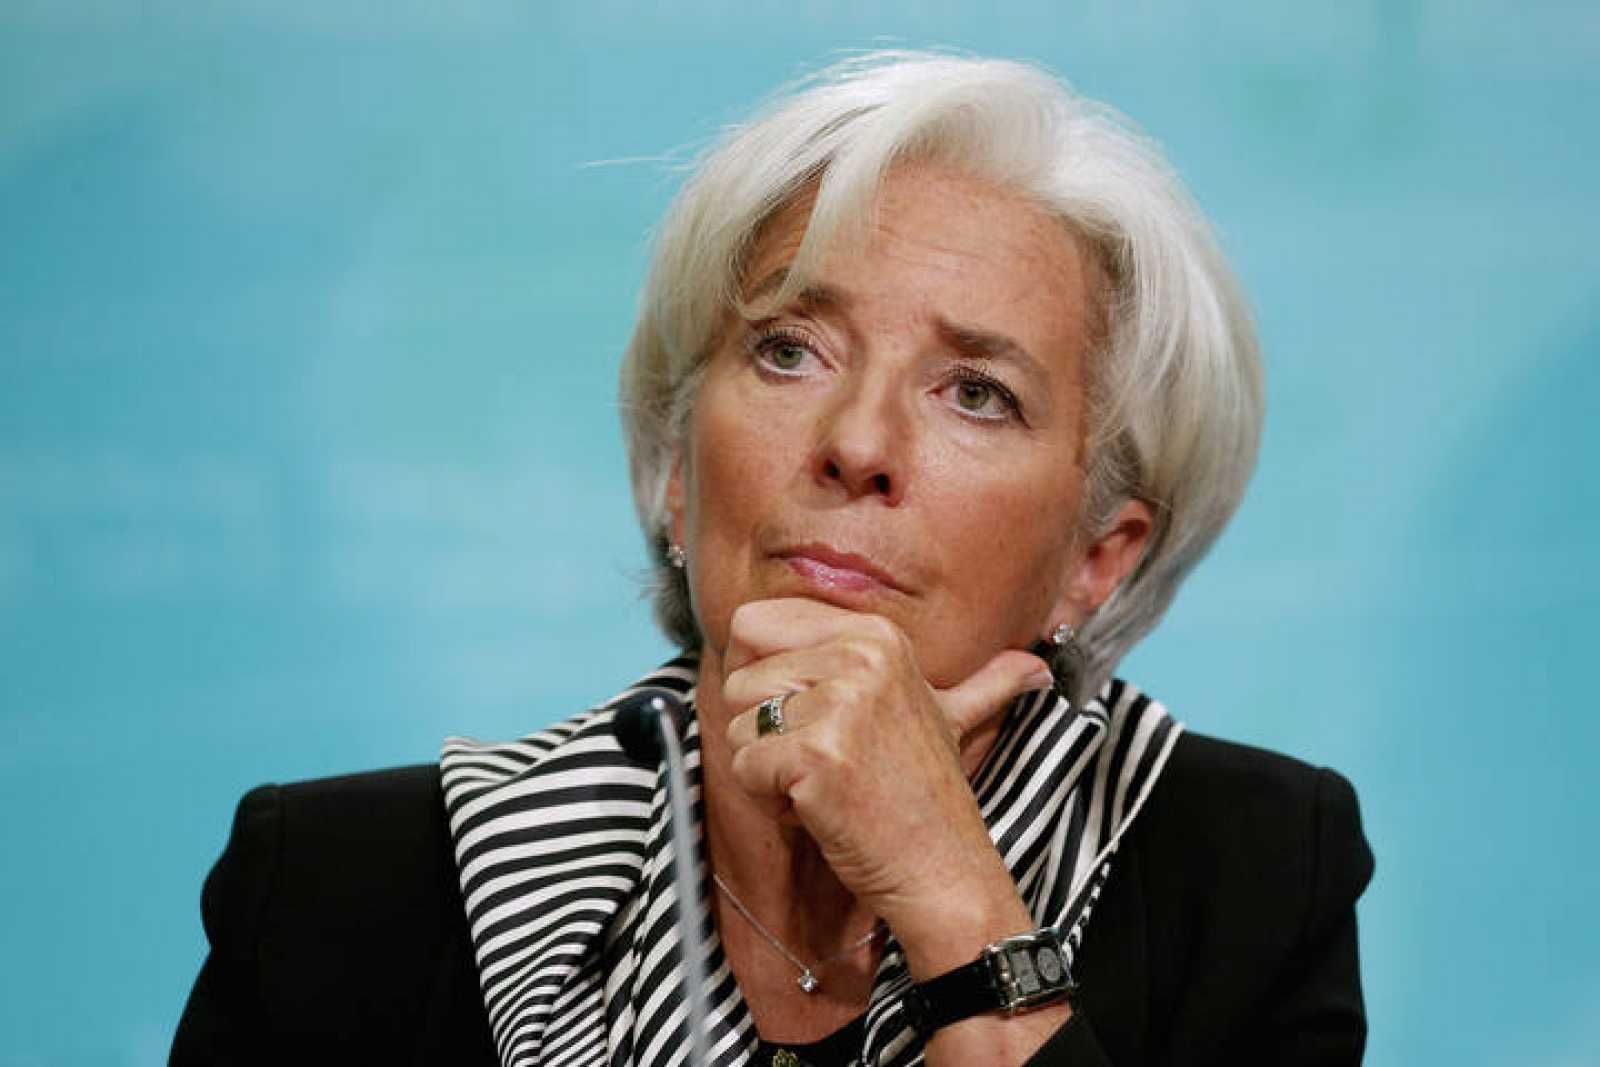 IMF Head Christine Lagarde Holds News Conf. On Economic Policy Priorities